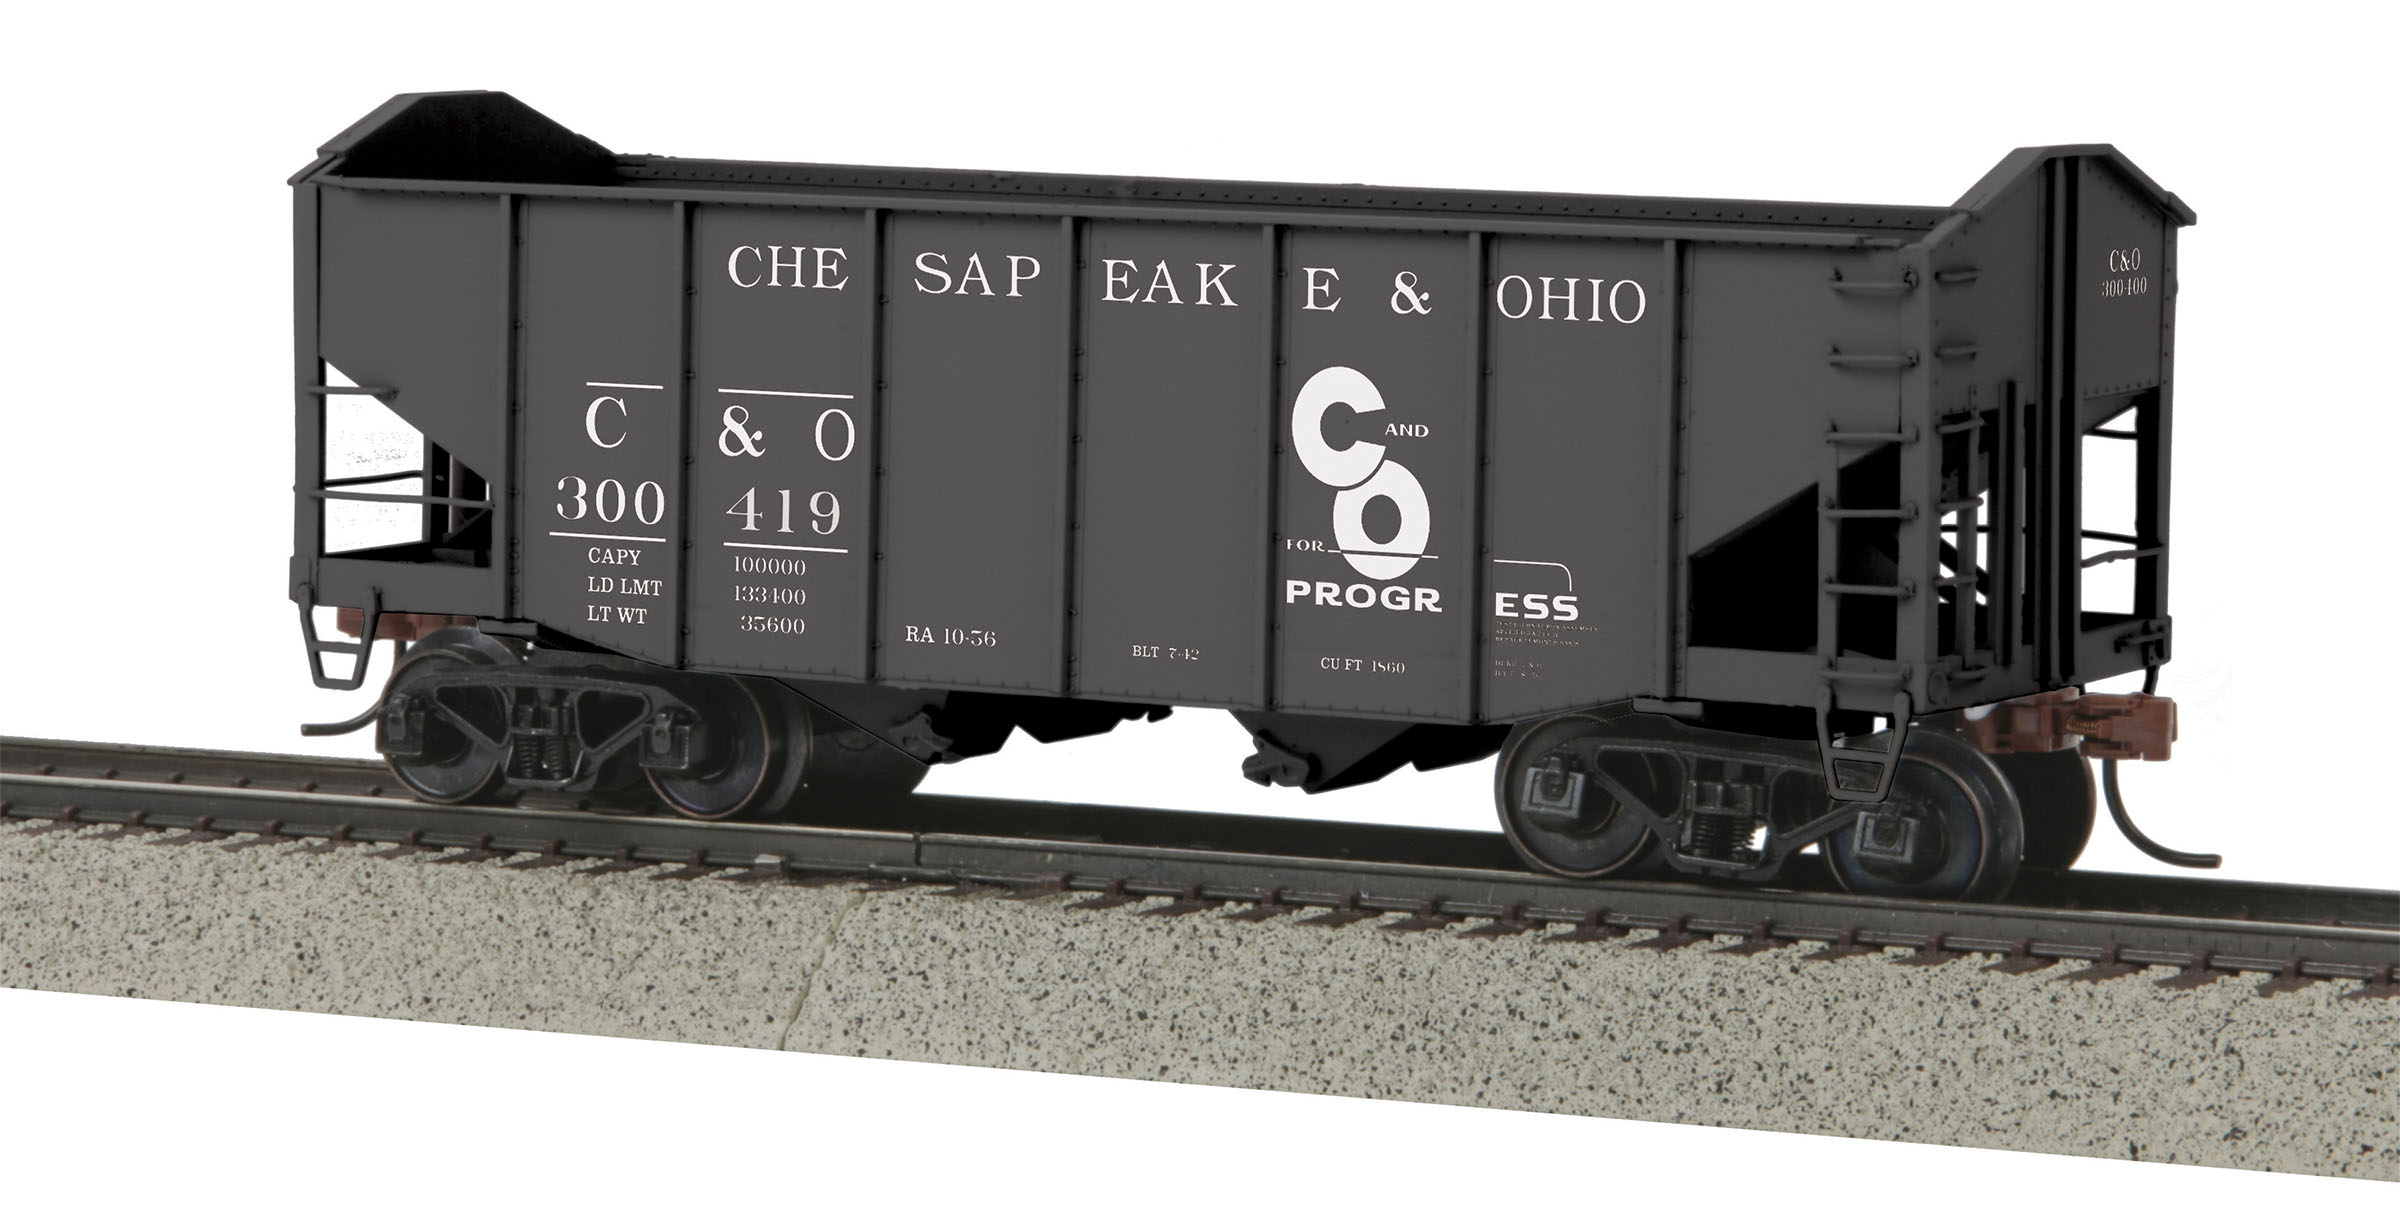 MTH 3575057 2Bay Fish Belly Hopper Hi-Rail Wheel C&O #300419